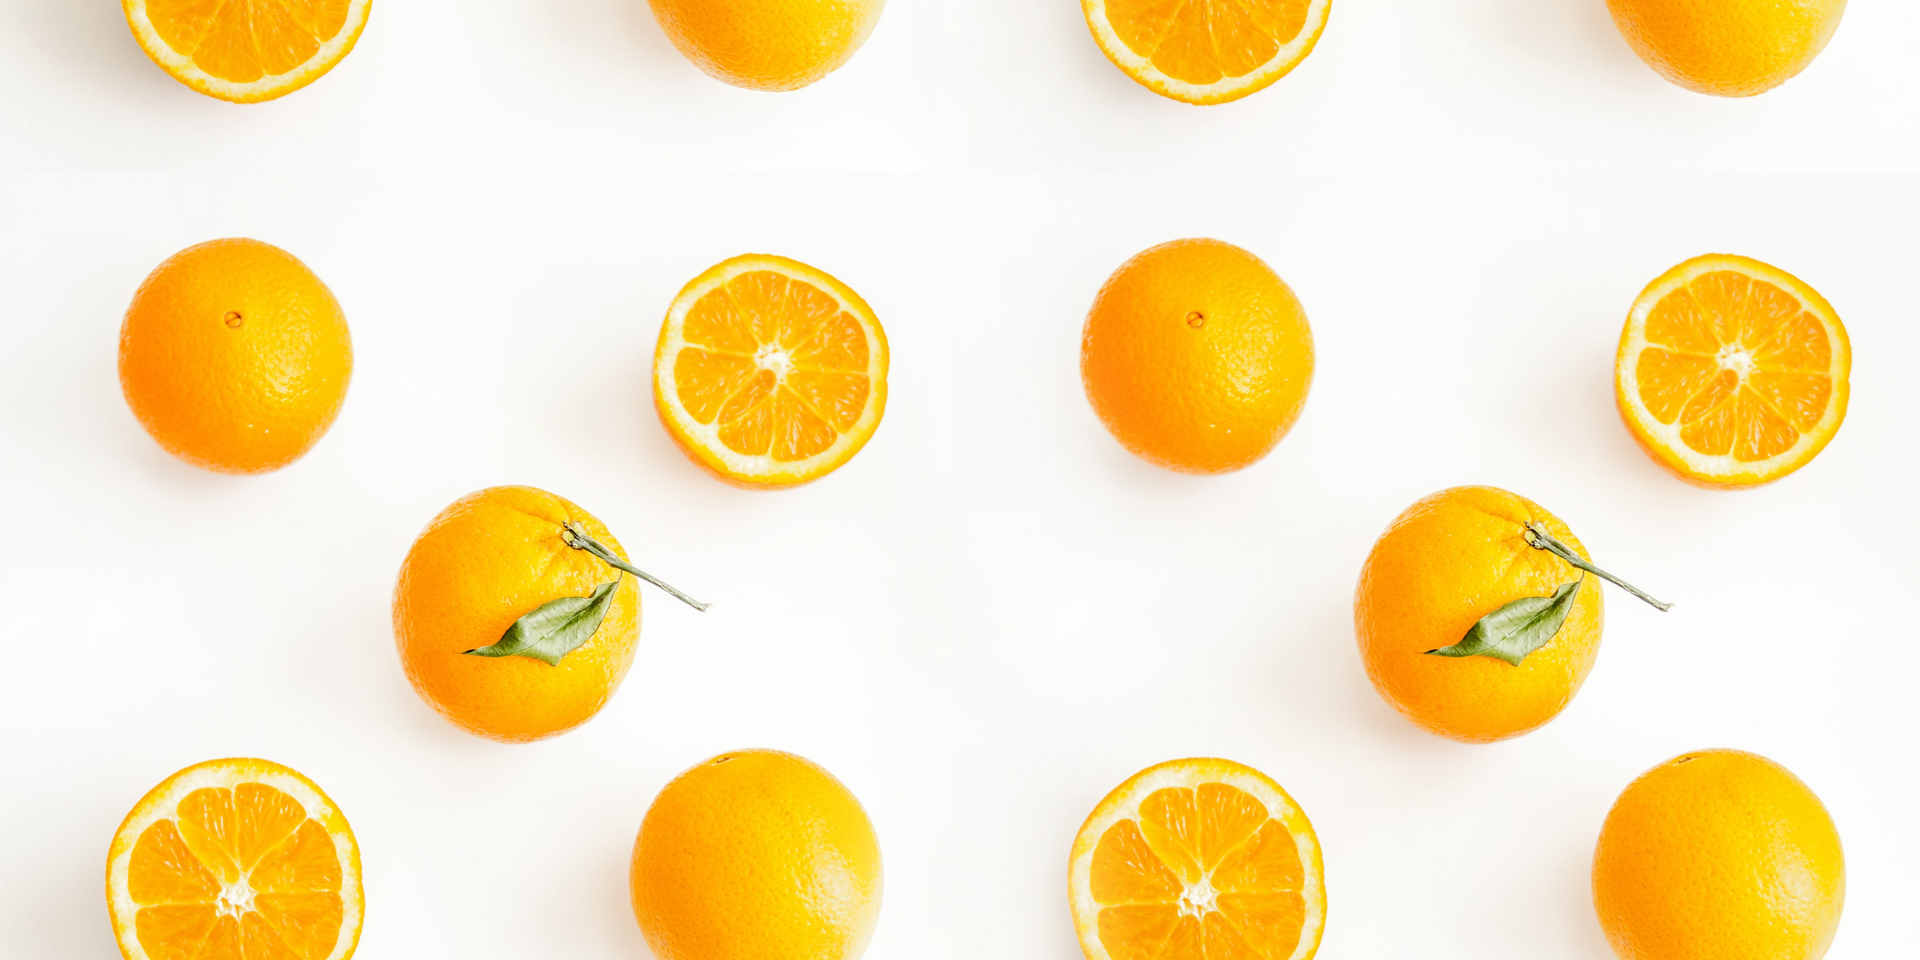 photo-of-sliced-orange-citrus-fruits-209